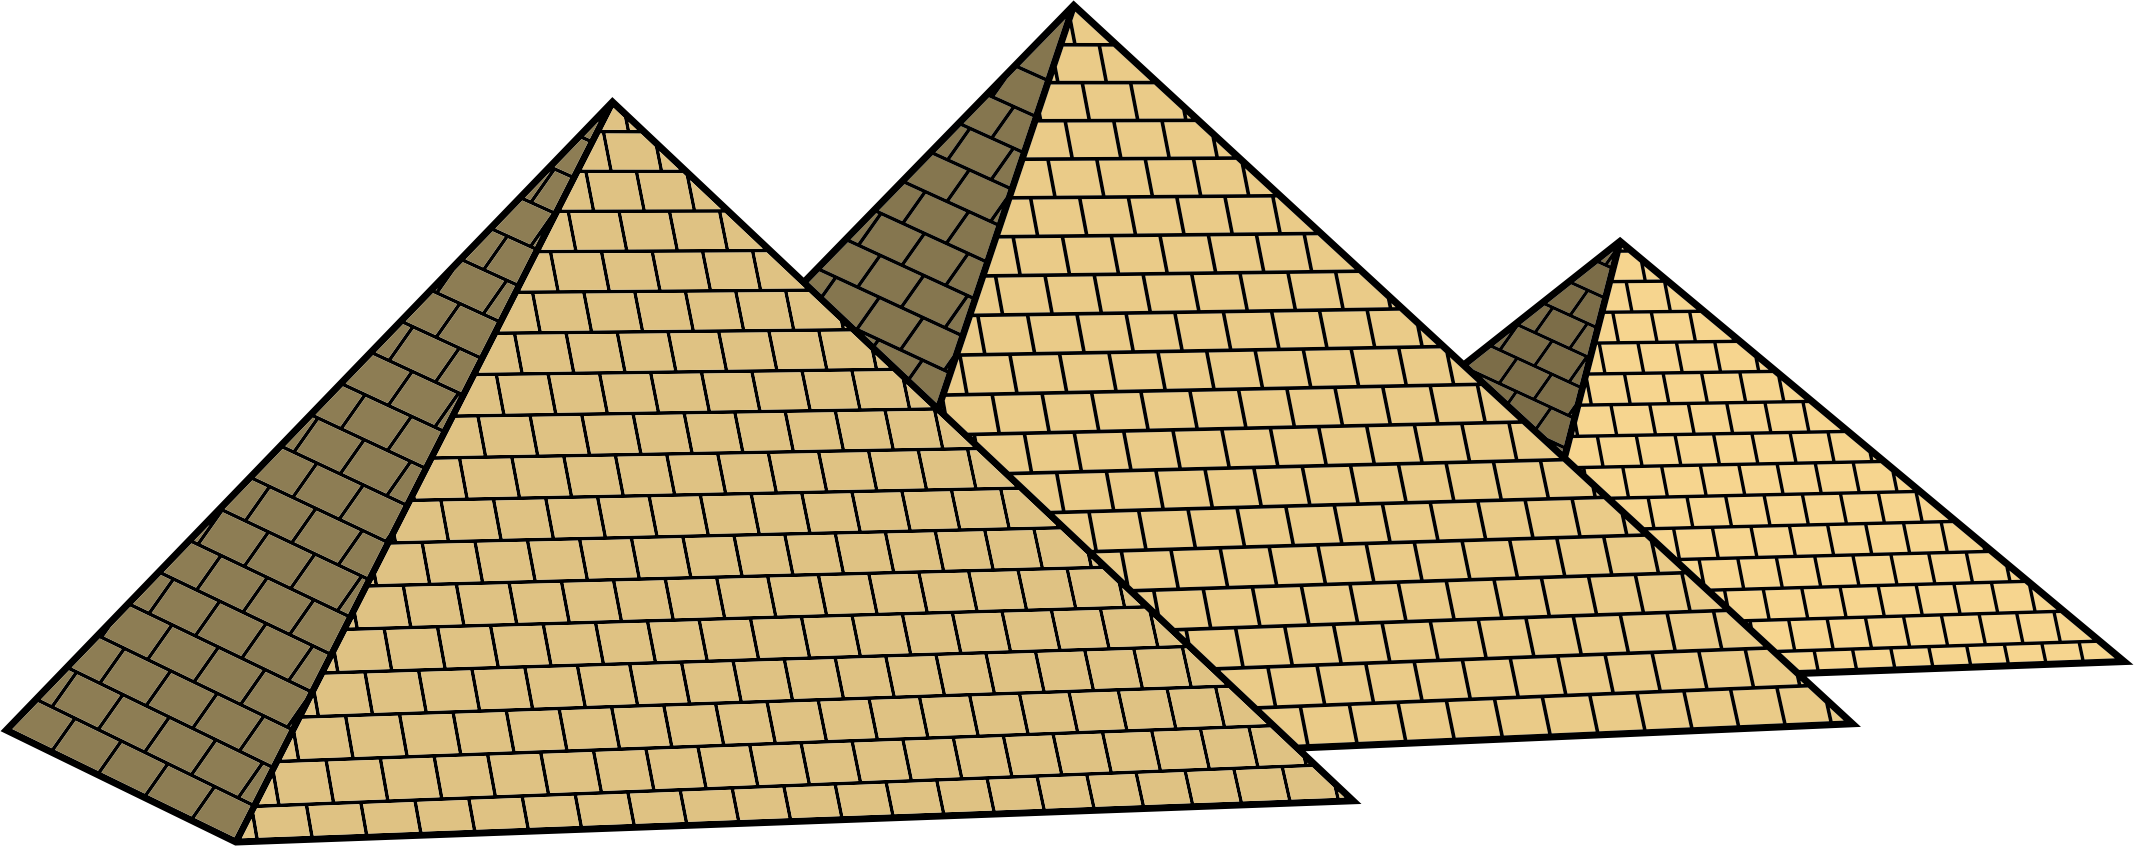 Pyramid png. Images transparent free download